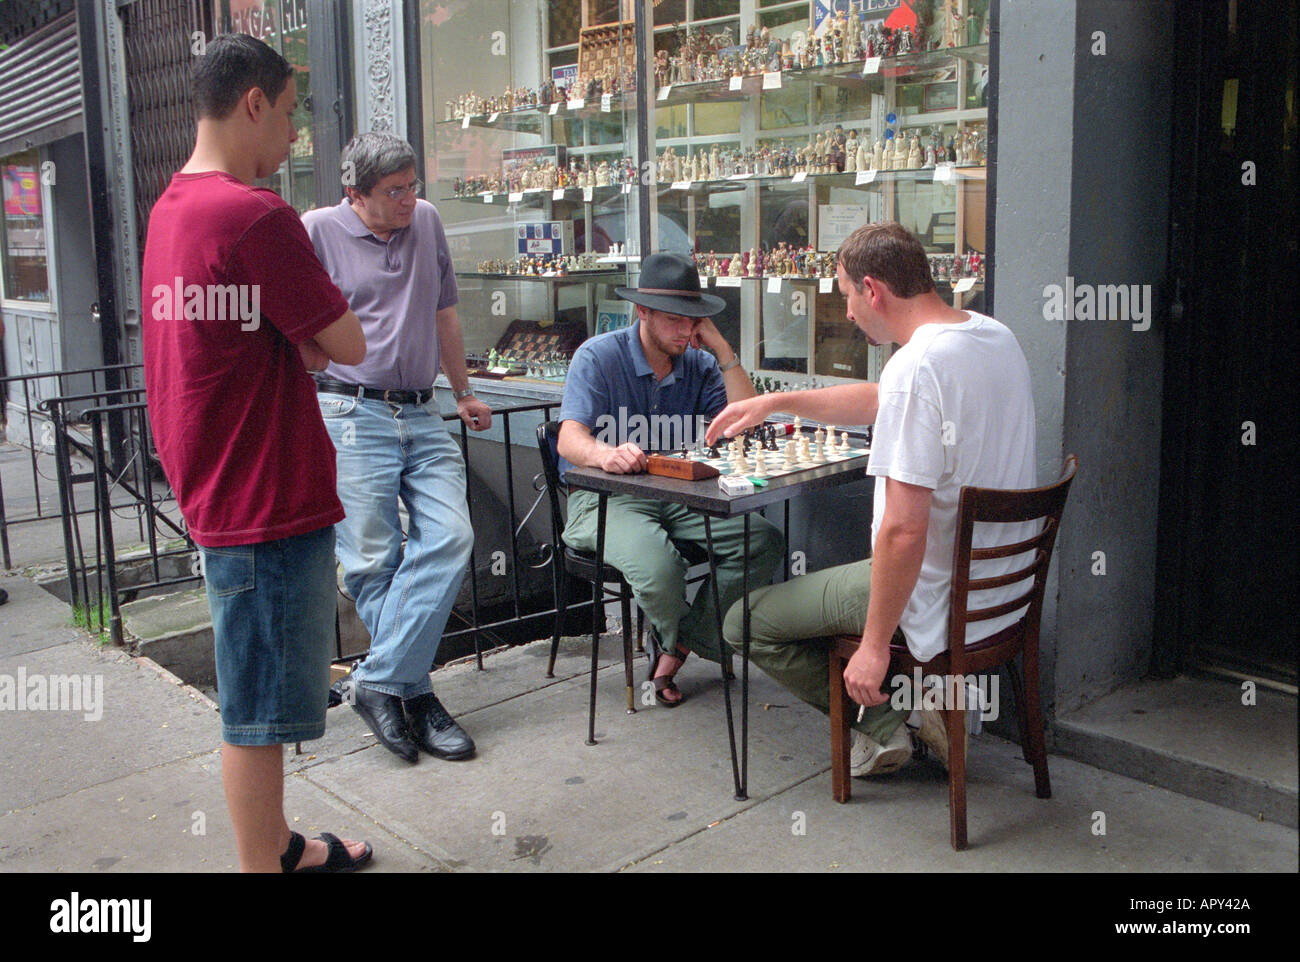 Men playing chess in the street in Greenwich Village in